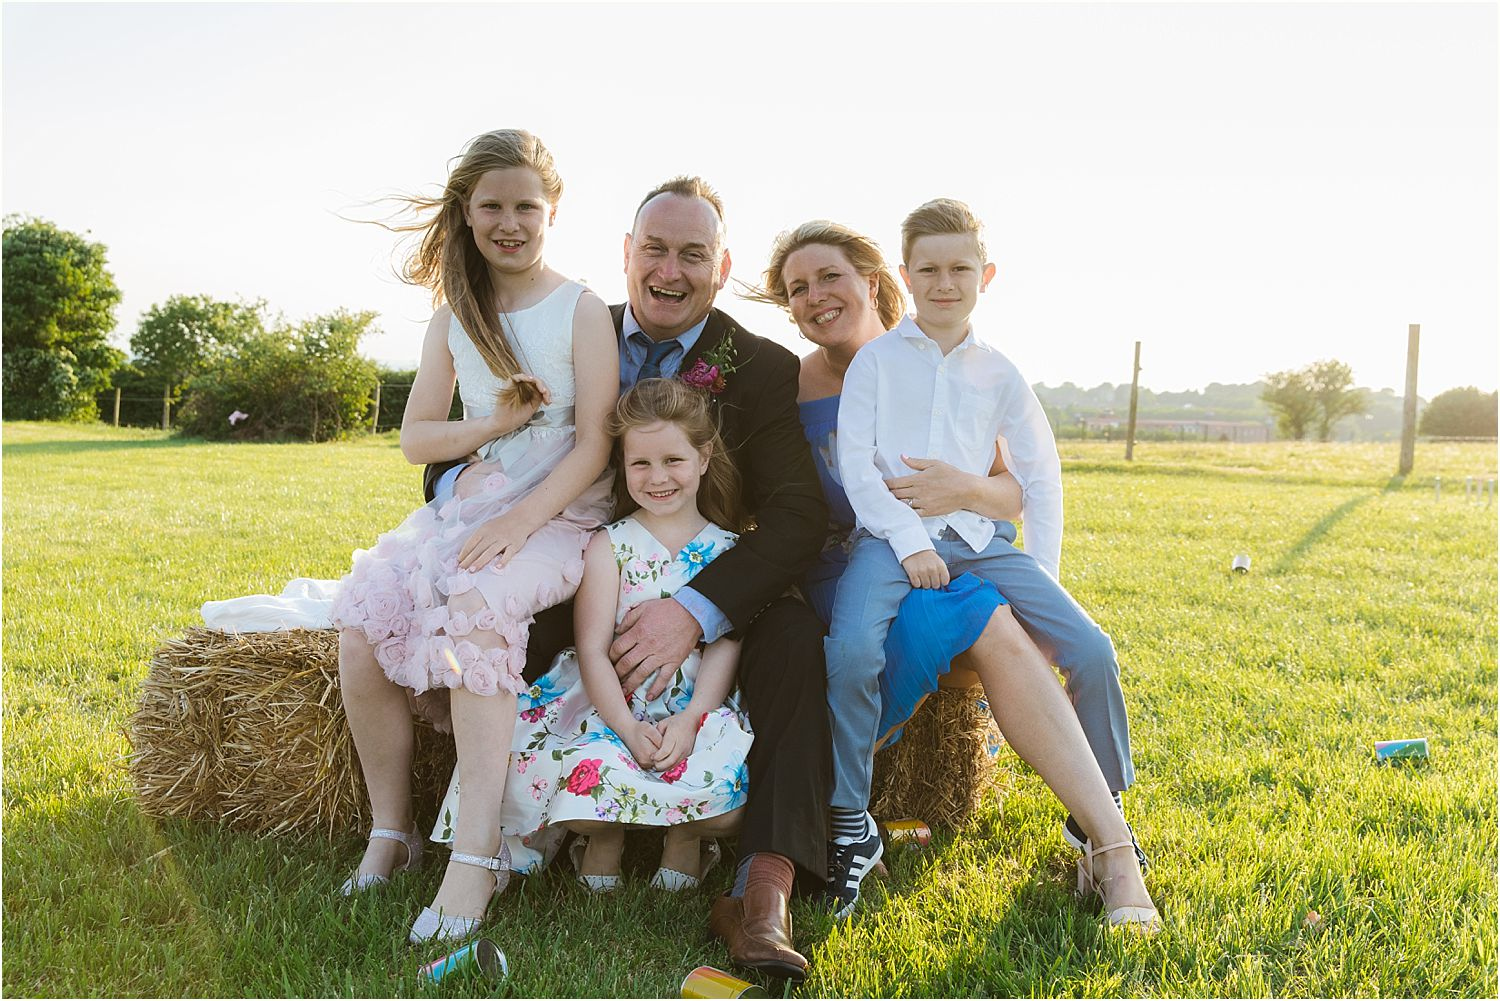 Family group portrait at wedding at rural Lancashire farm